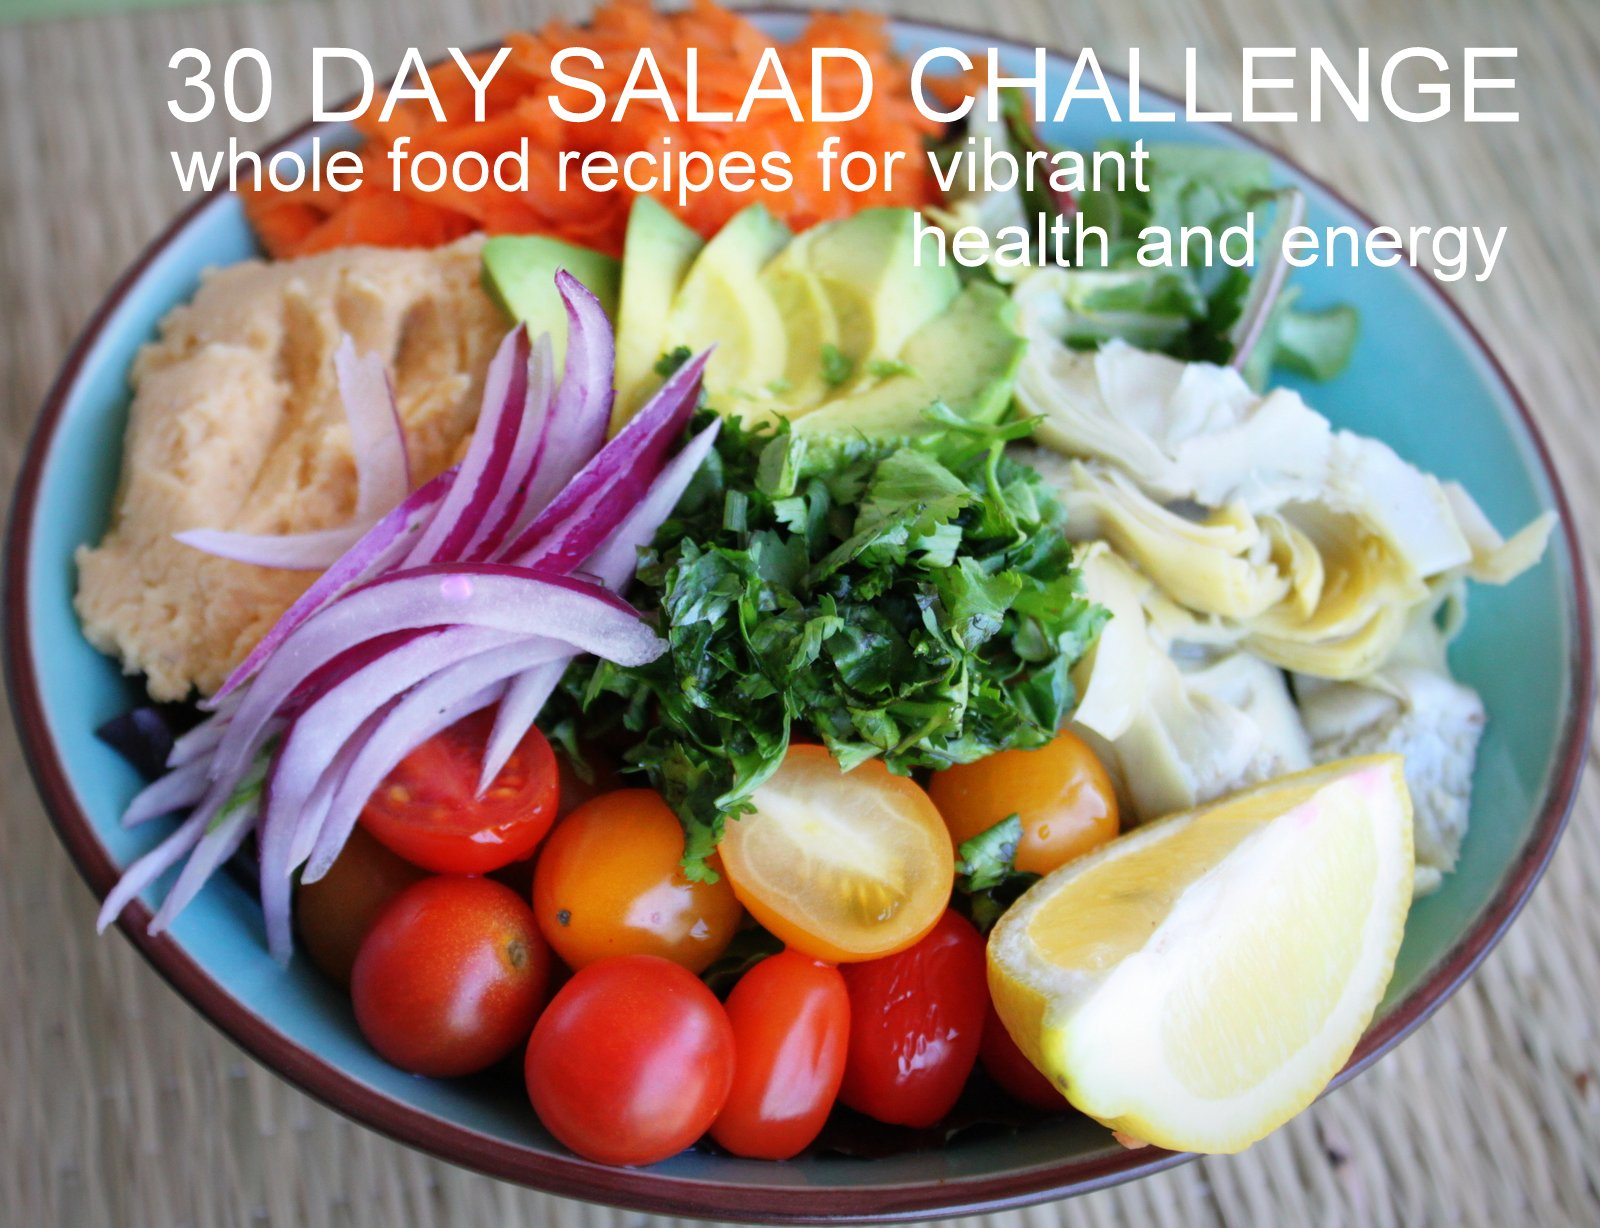 30 day salad challenge e book whole food recipes for vibrant health 30 day salad challenge e book forumfinder Gallery